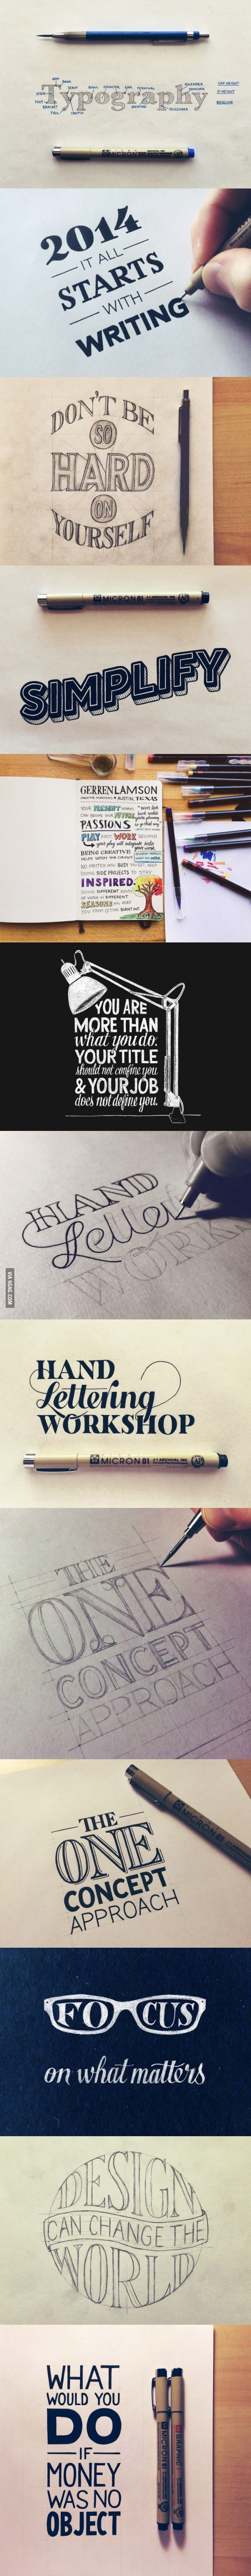 Awesome collection of hand lettering // #type #typography #calligraphy